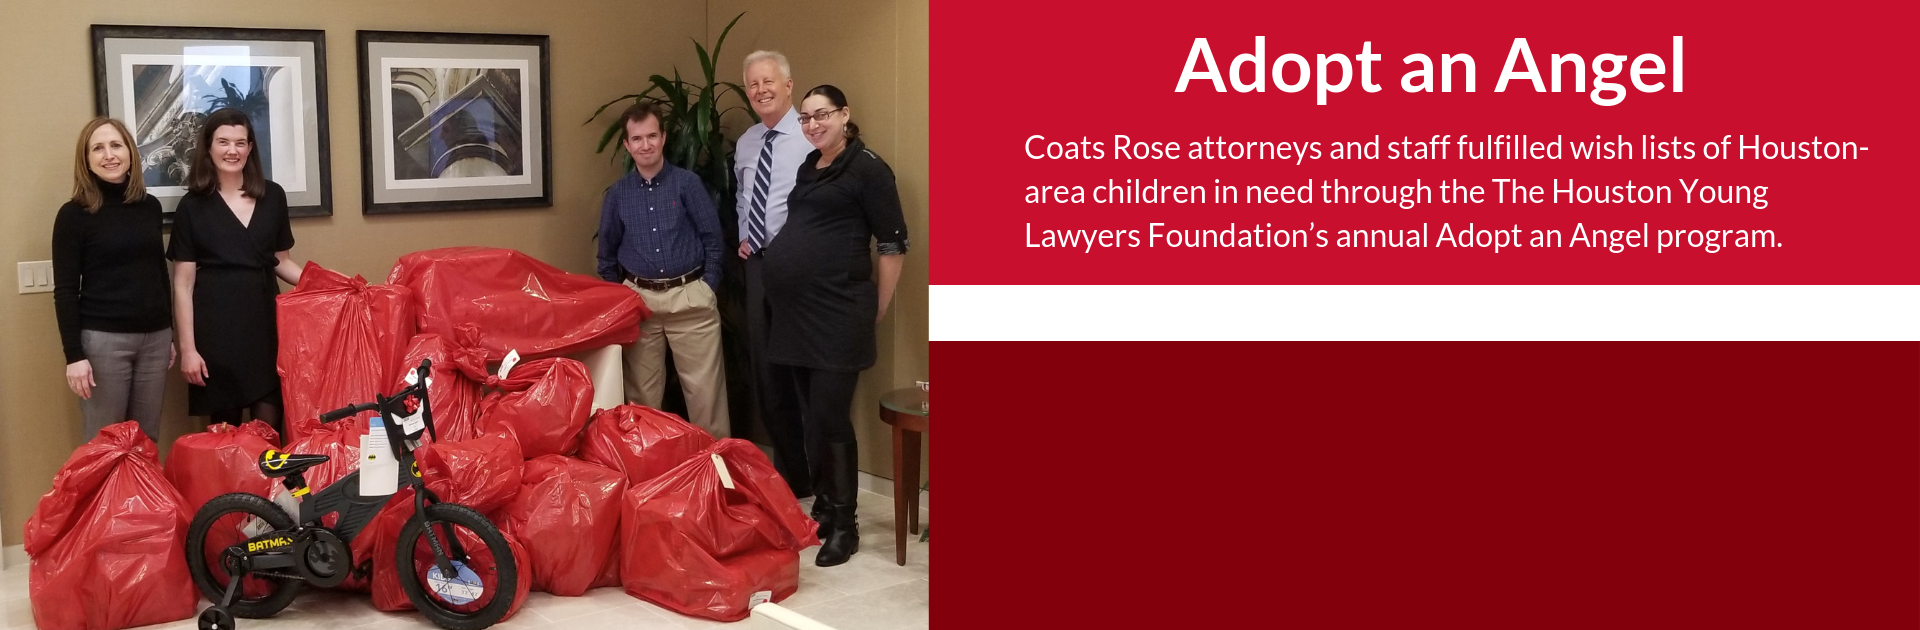 Coats Rose Attorneys and Staff Fulfill Children's Wish Lists Through Houston Young Lawyers Foundation's Adopt an Angel Program